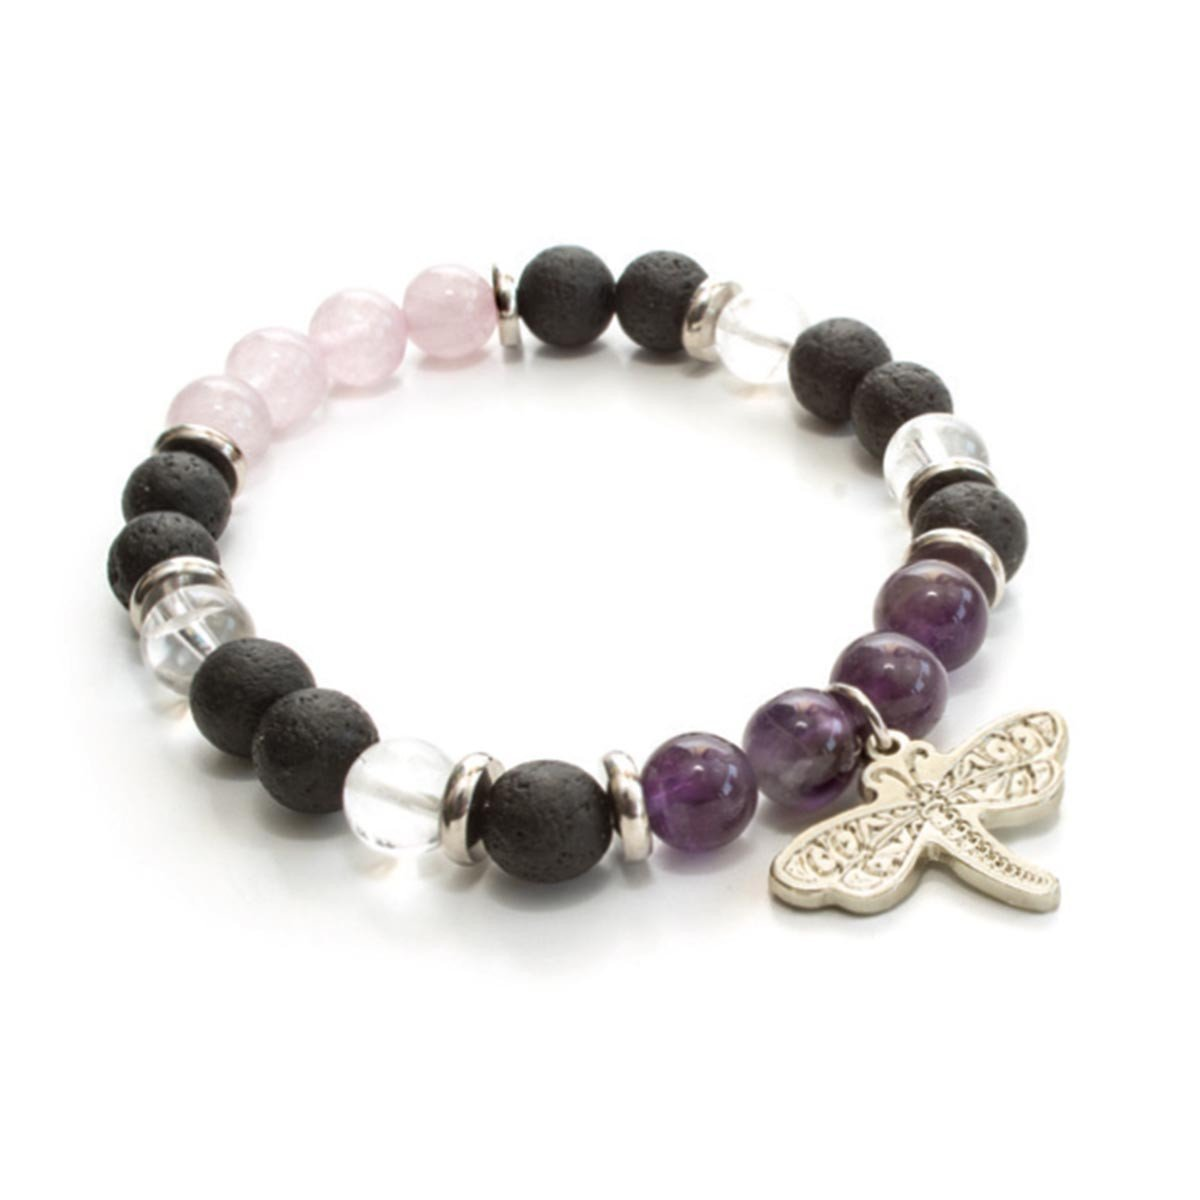 Amethyst Healing Bracelets by Various Artists